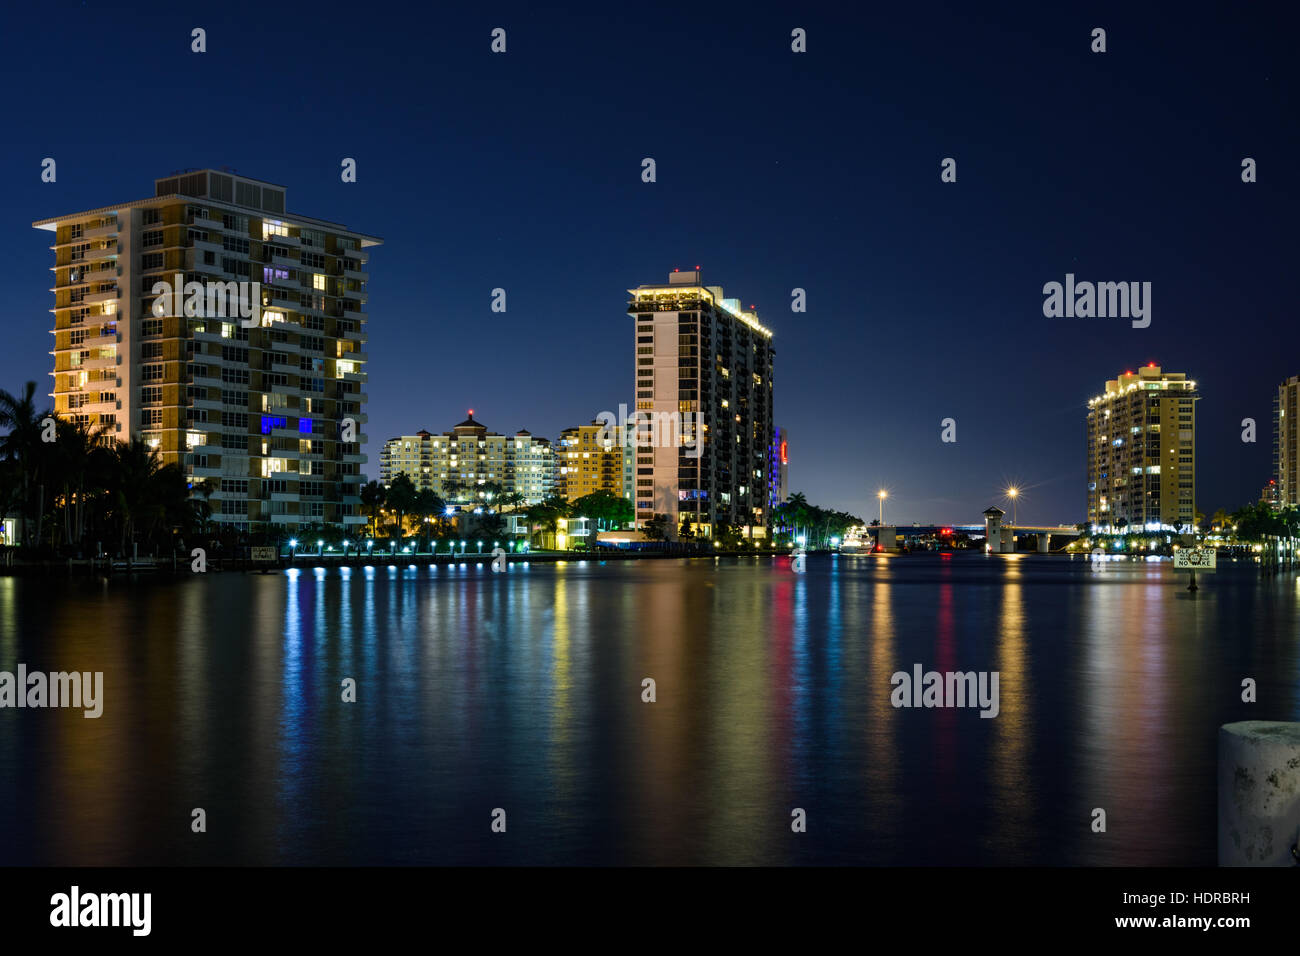 Apartments at night alongside the waterways of Fort Lauderdale in Florida Stock Photo